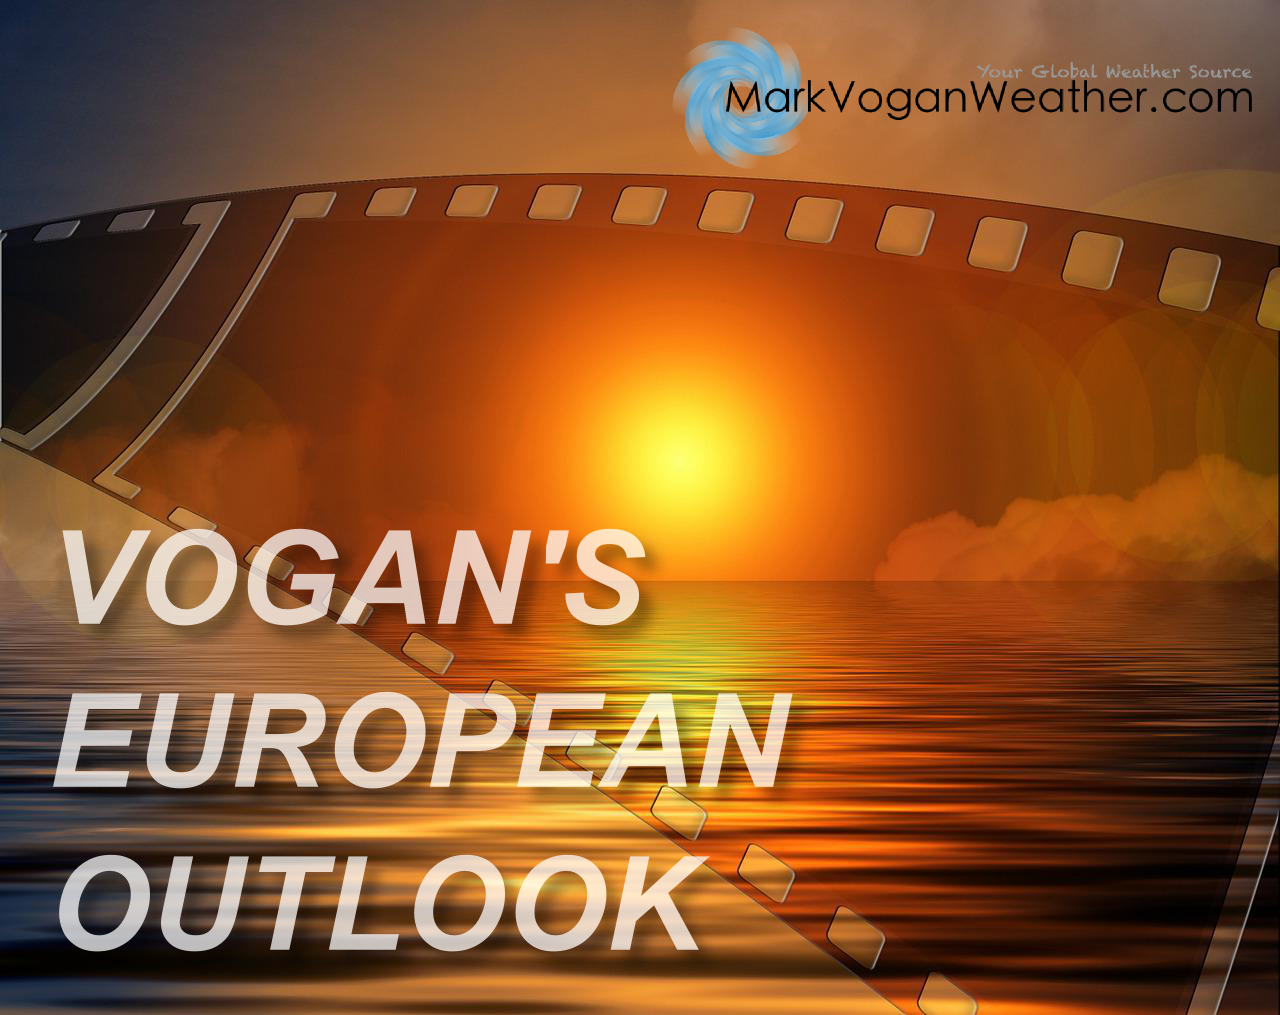 WED 23 JUL: VOGAN'S EUROPEAN OUTLOOK